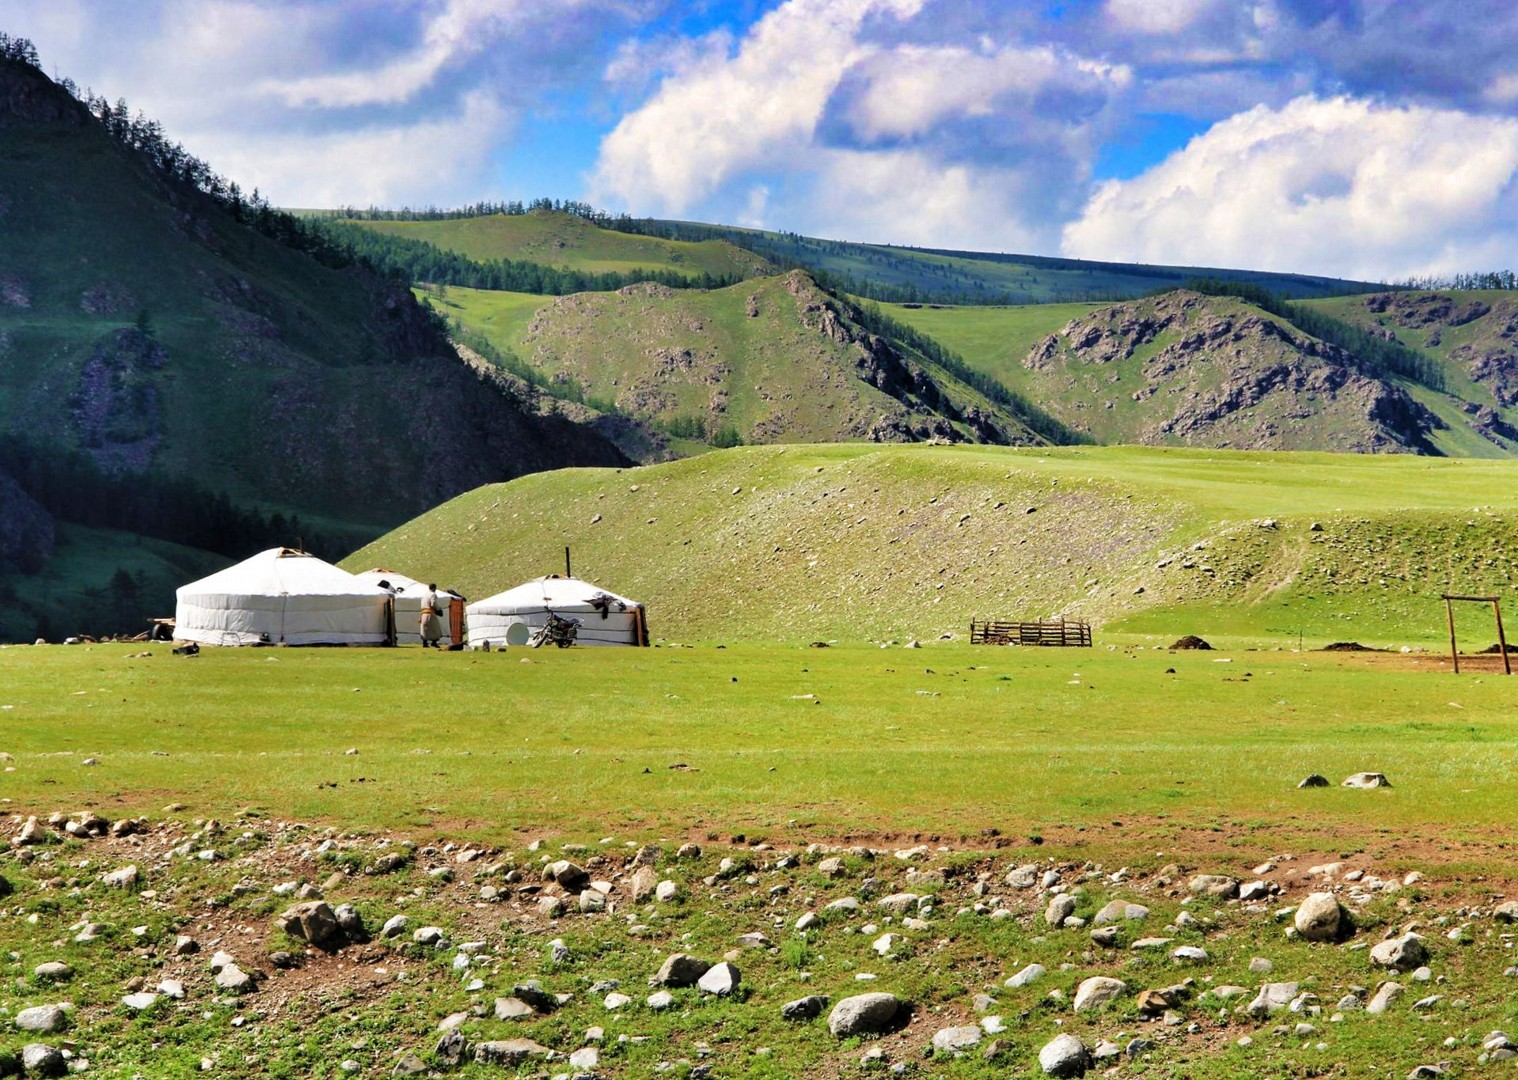 mongolia-cycling-holiday-true-wilderness.jpg - NEW! Mongolia - Route of the Nomads - Cycling Adventures